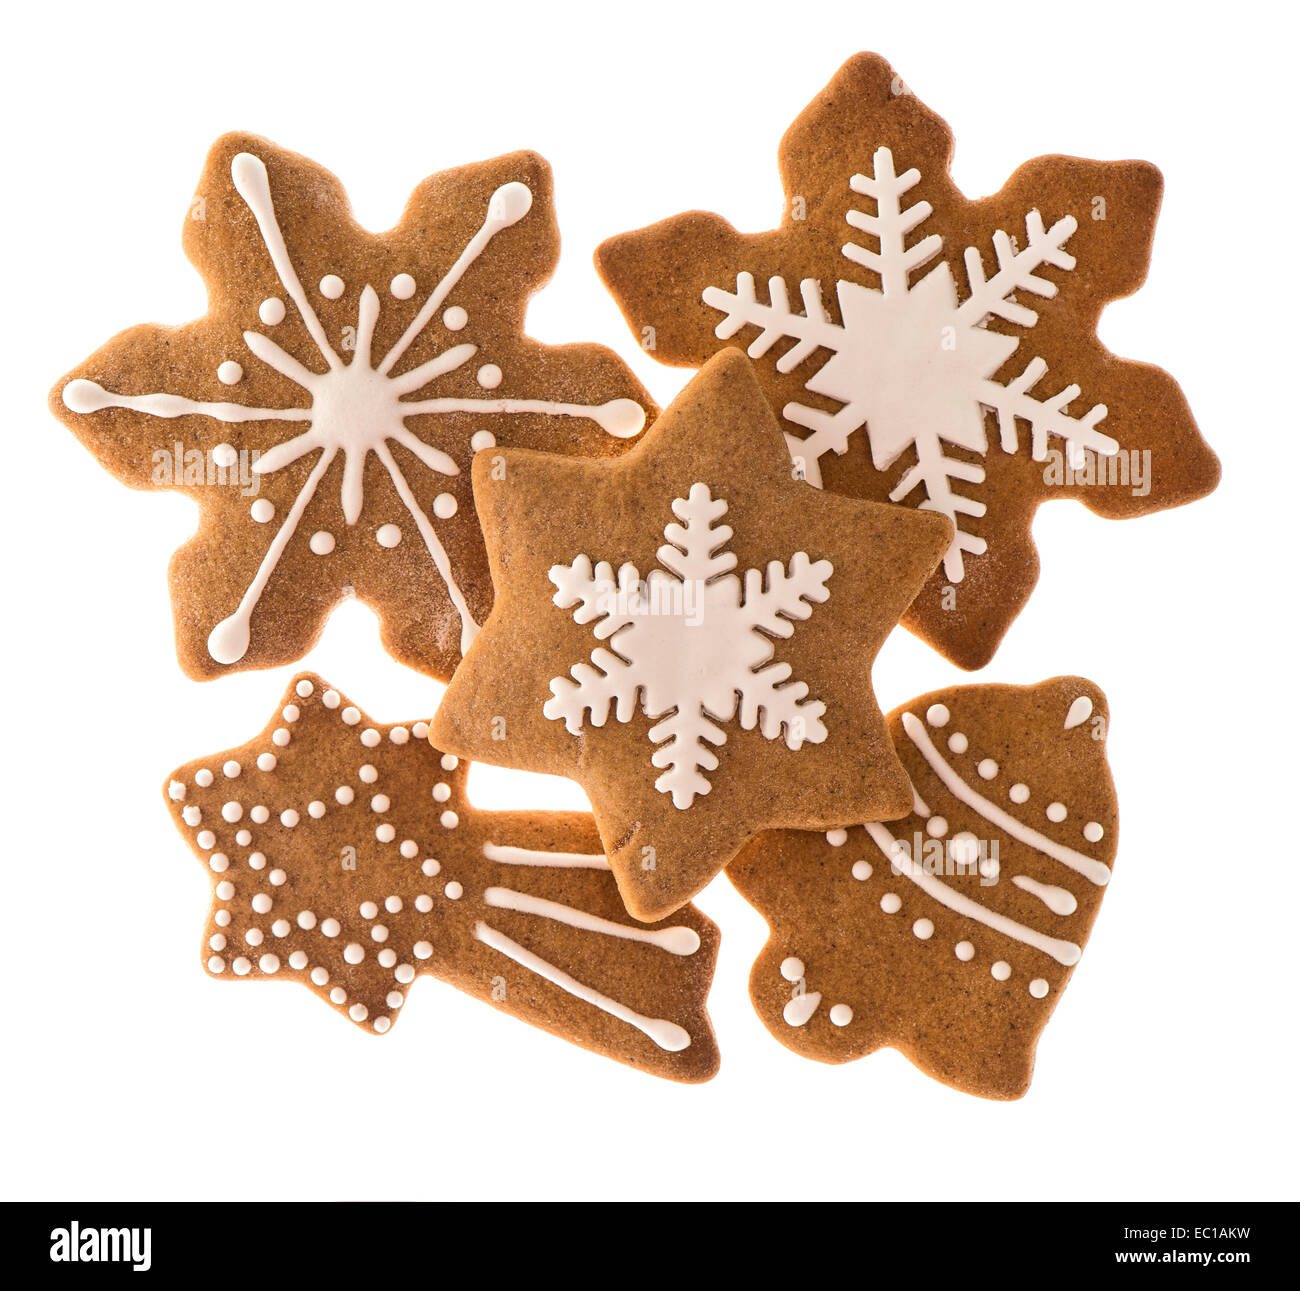 Image result for stock photos christmas traditions